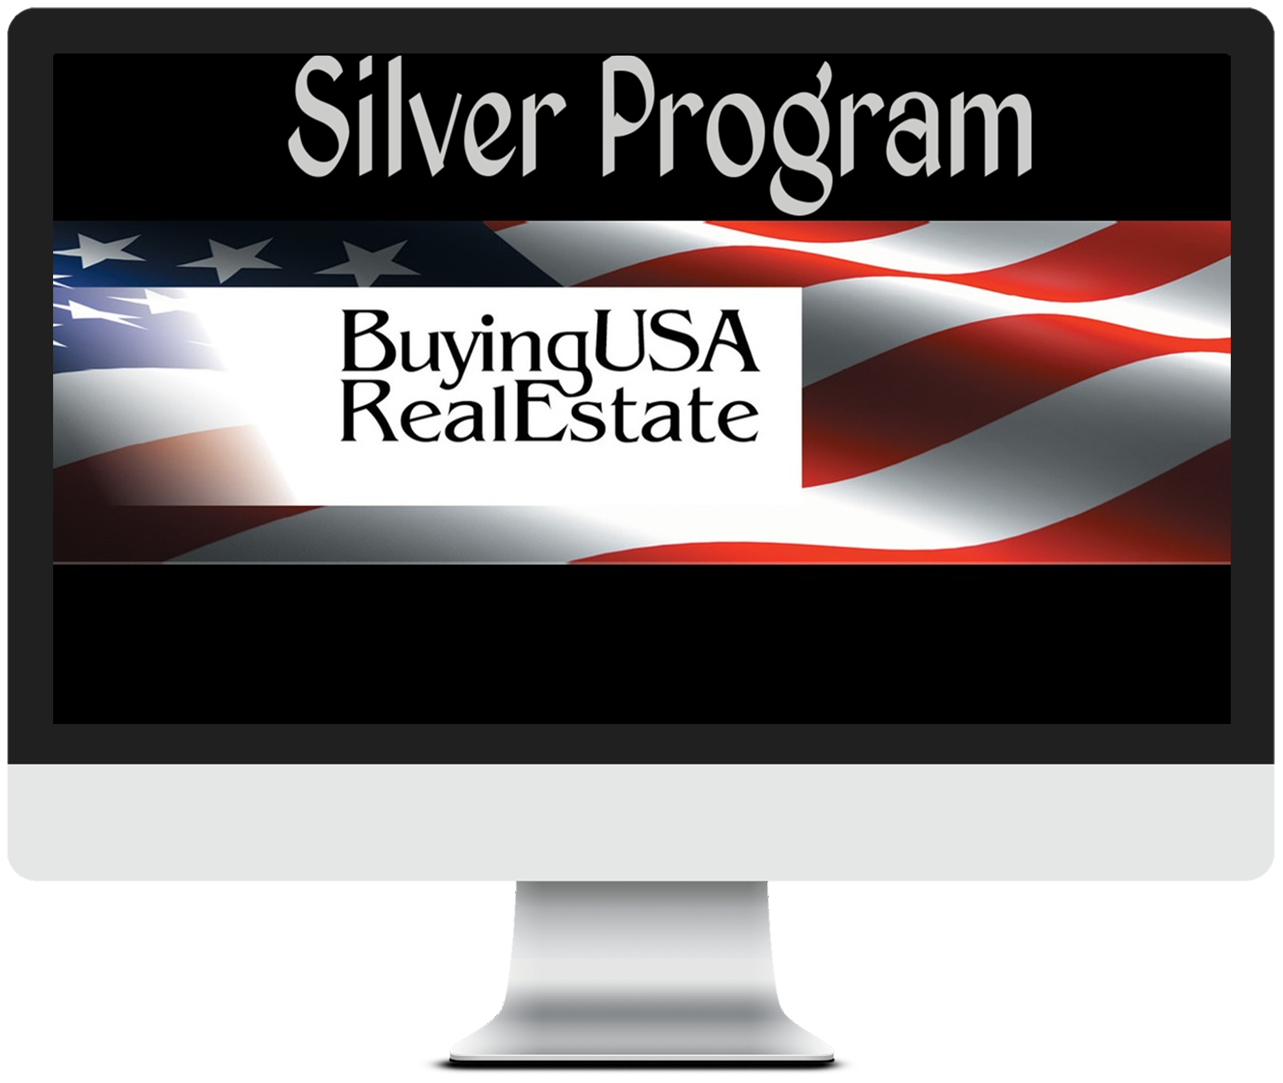 Silver Program for Buying USA Real Estate